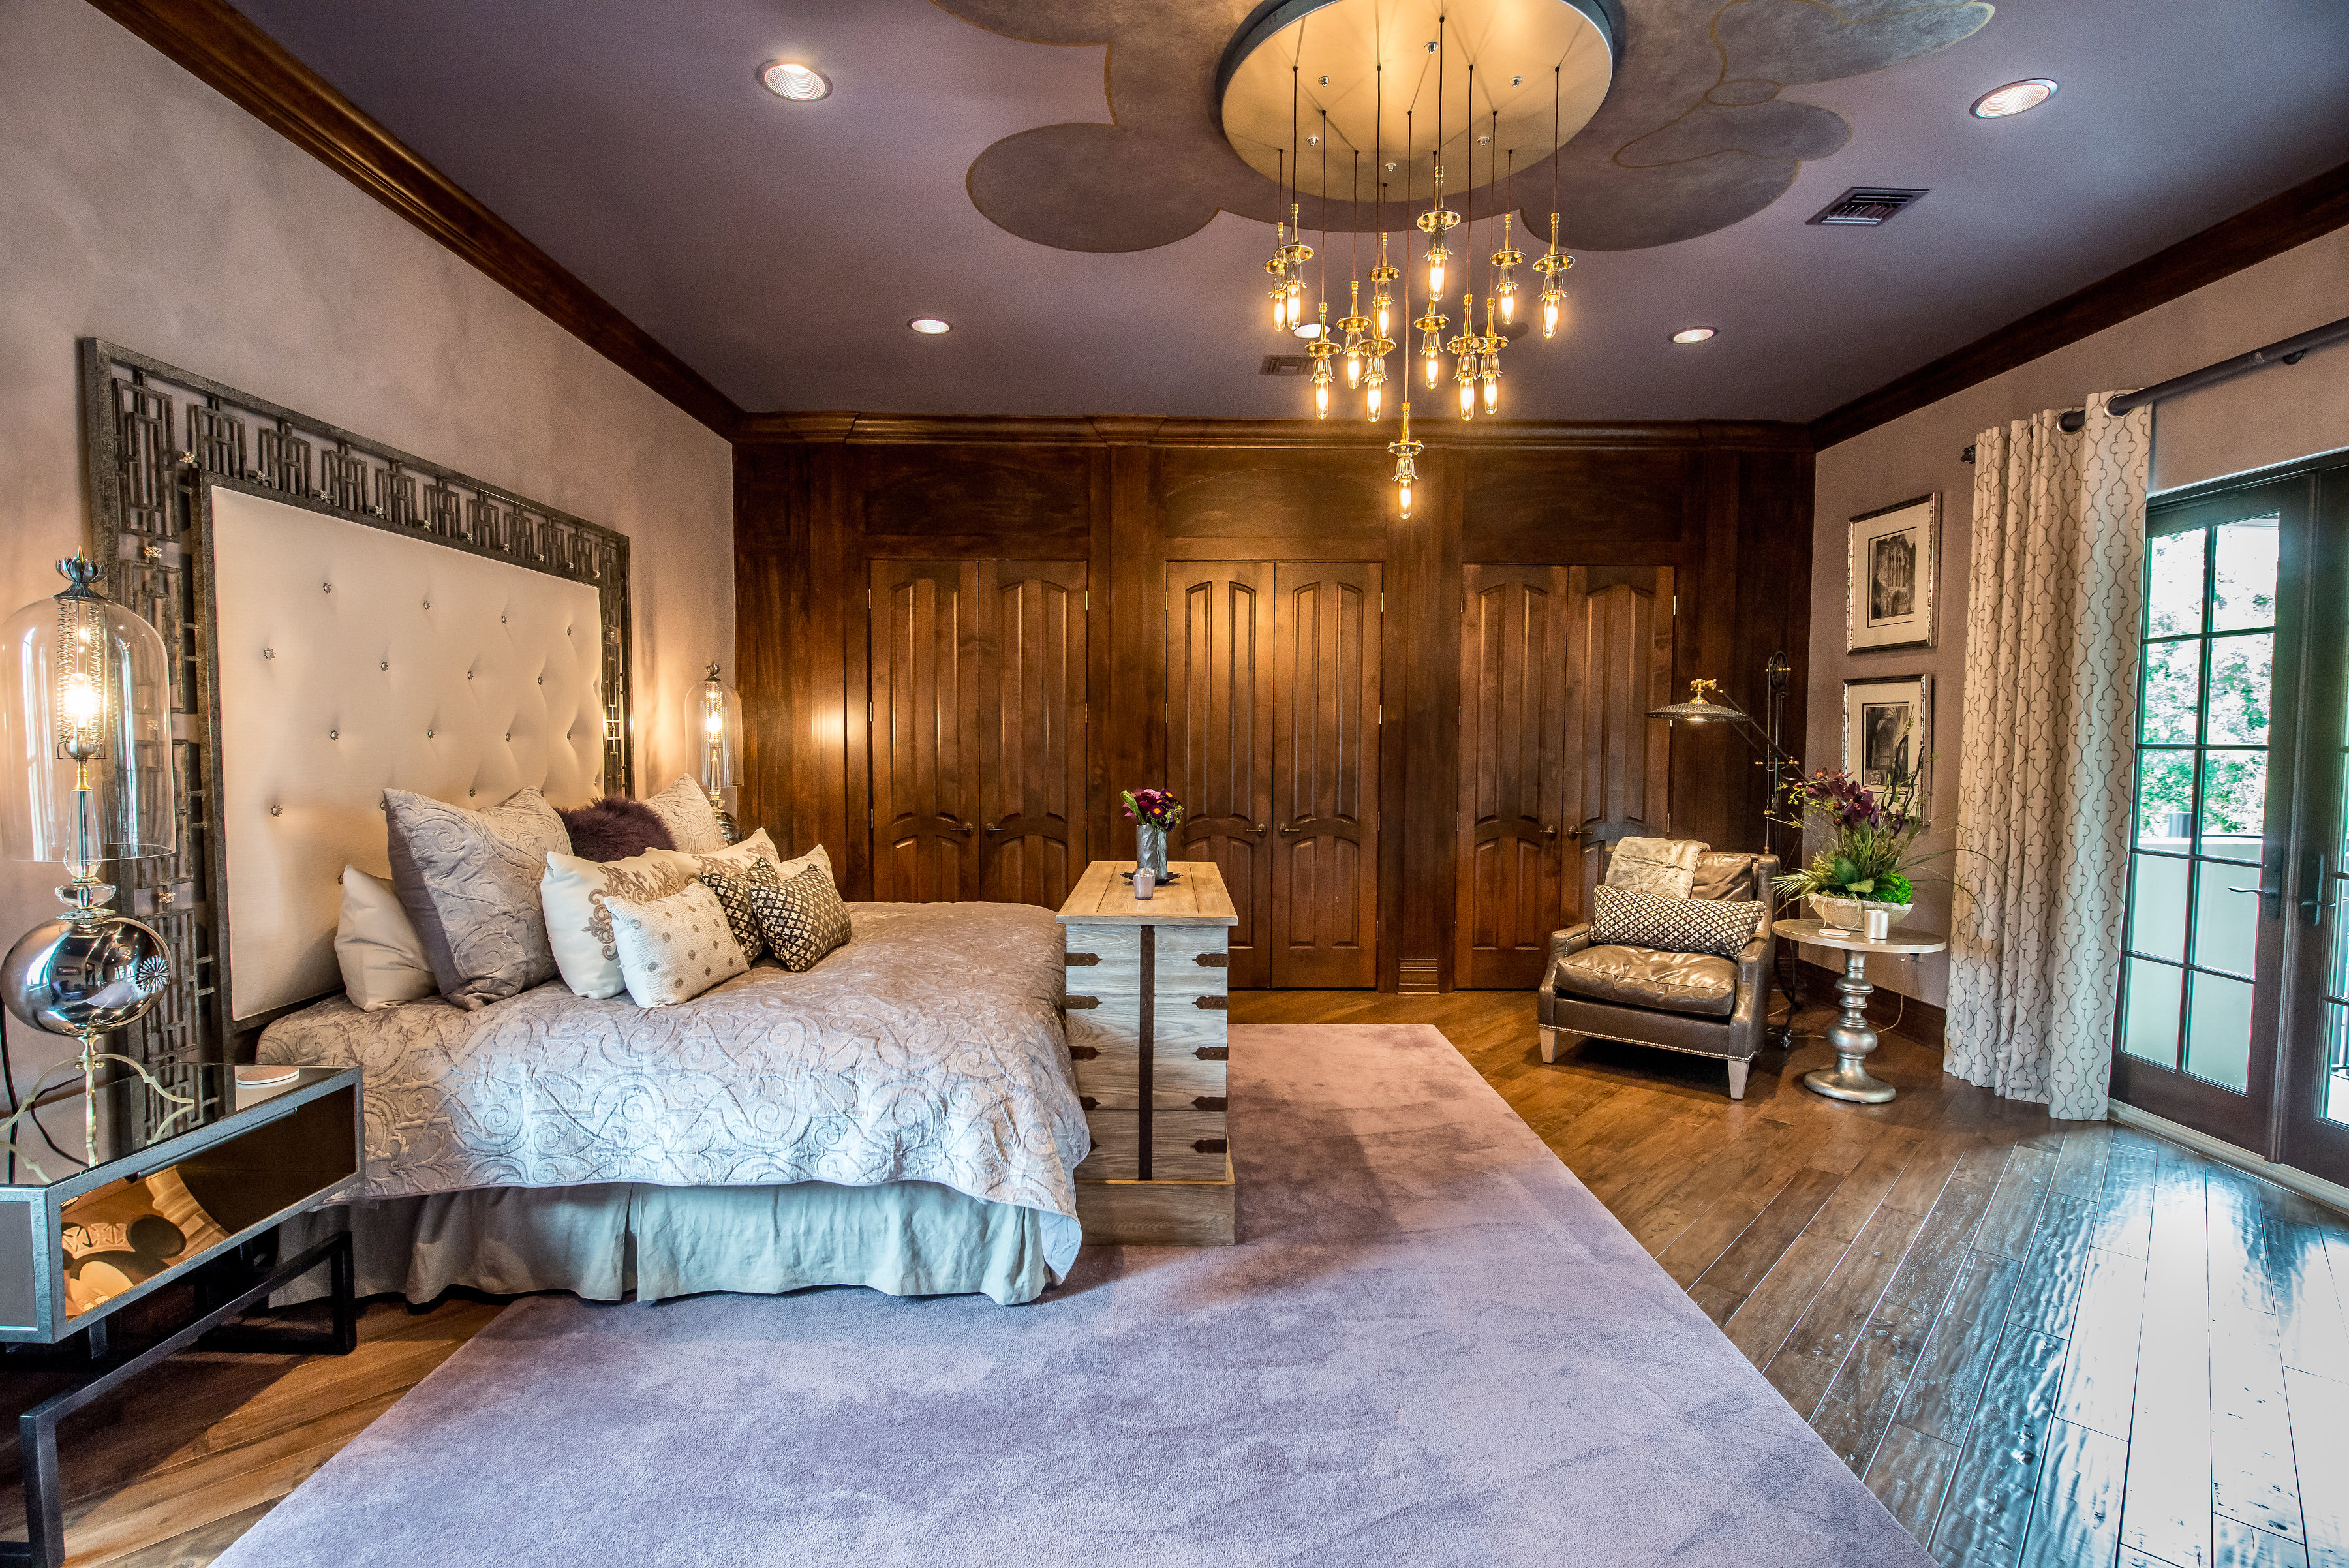 With Elegantly Themed Cinderella, Maleficent And Fantasia Inspired Bedrooms,  This Home Inspires With Both Architectural Design And Magical Splendor.